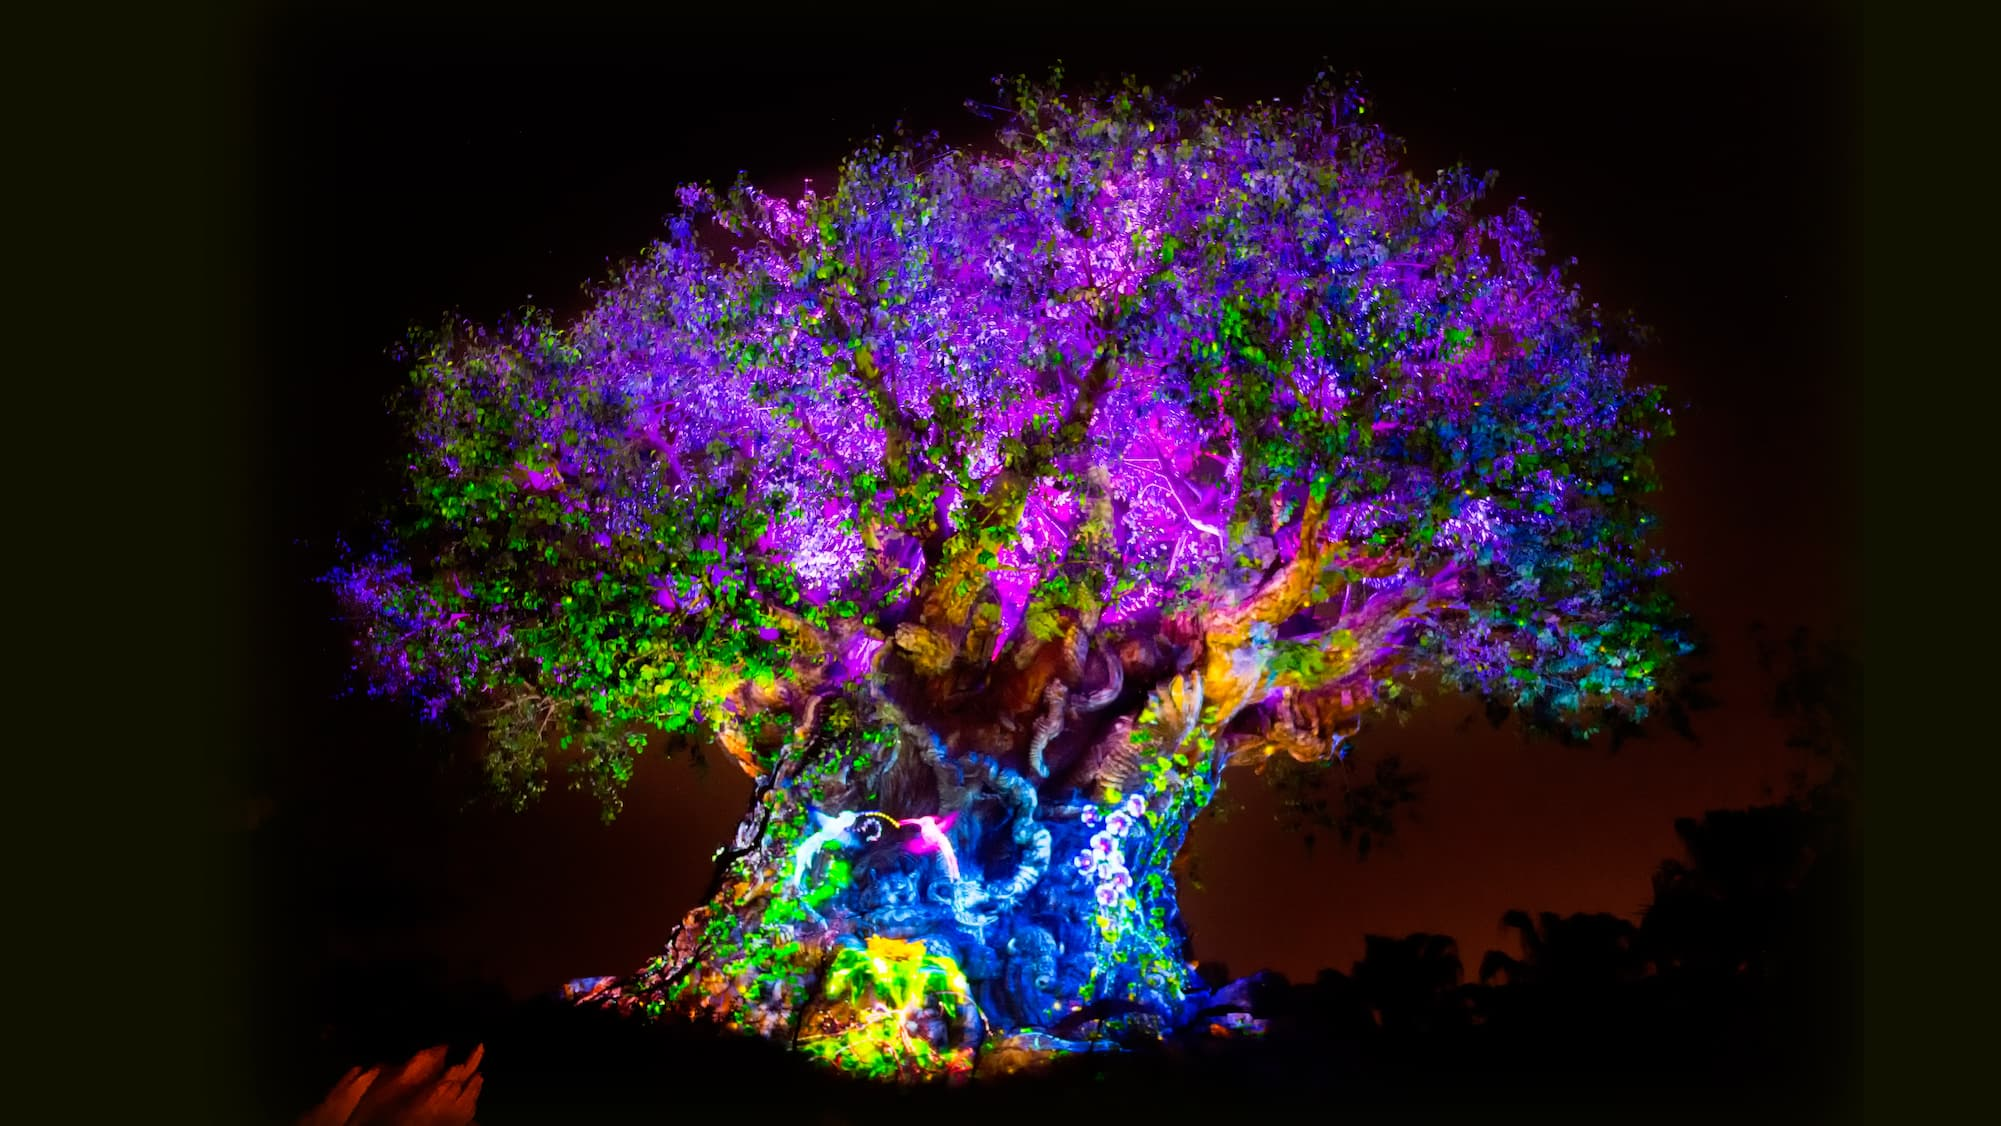 The Tree Of Life Awakens At Nighttime With Vibrant Lights Animal Projections And Special Effects